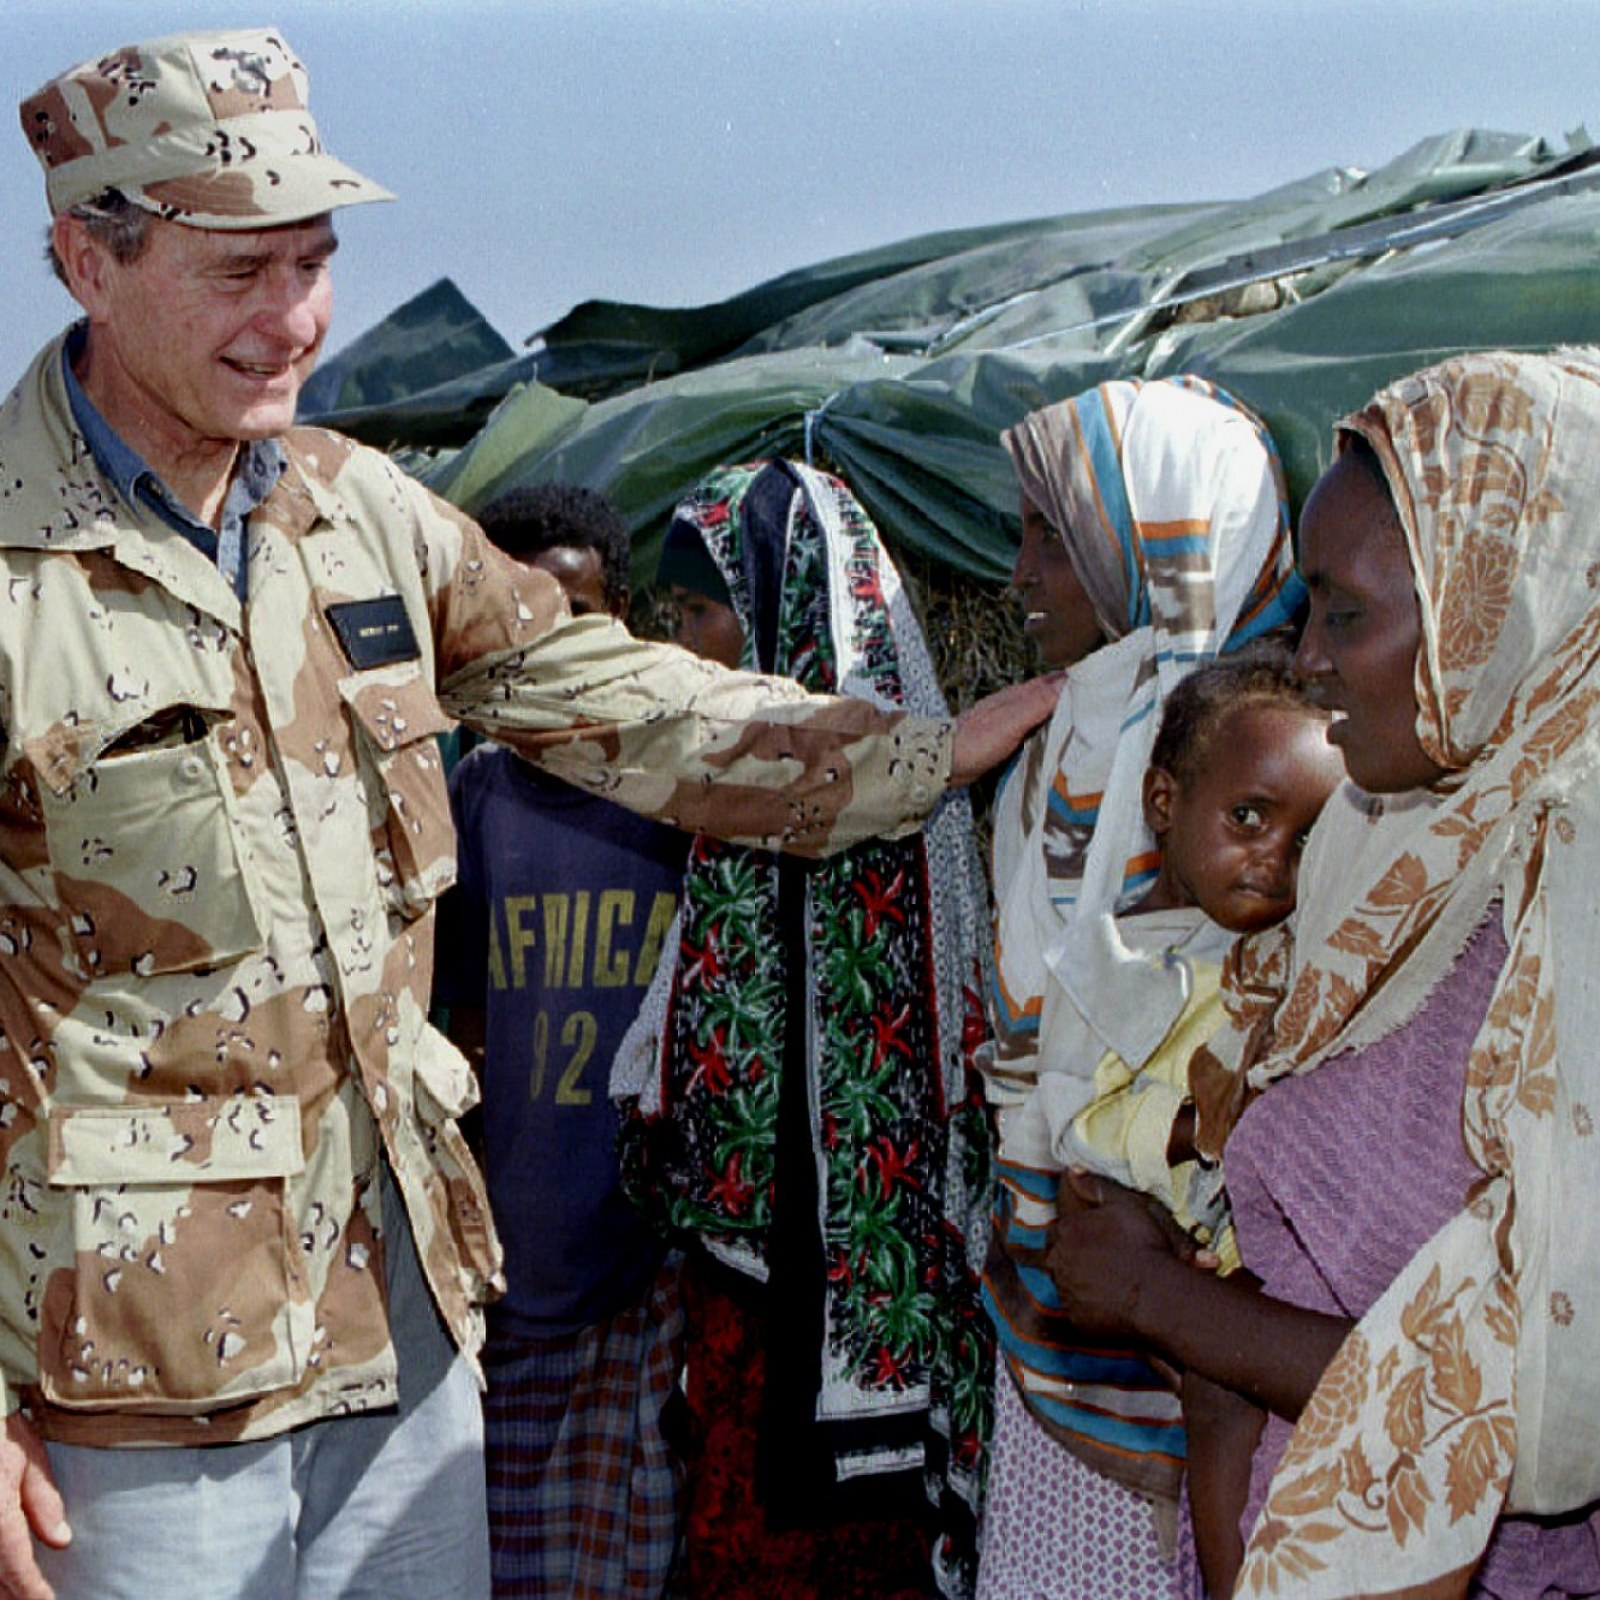 Somalia's 1992 Thanksgiving: Reflections on U.S. Humanitarian Intervention in the Horn of Africa